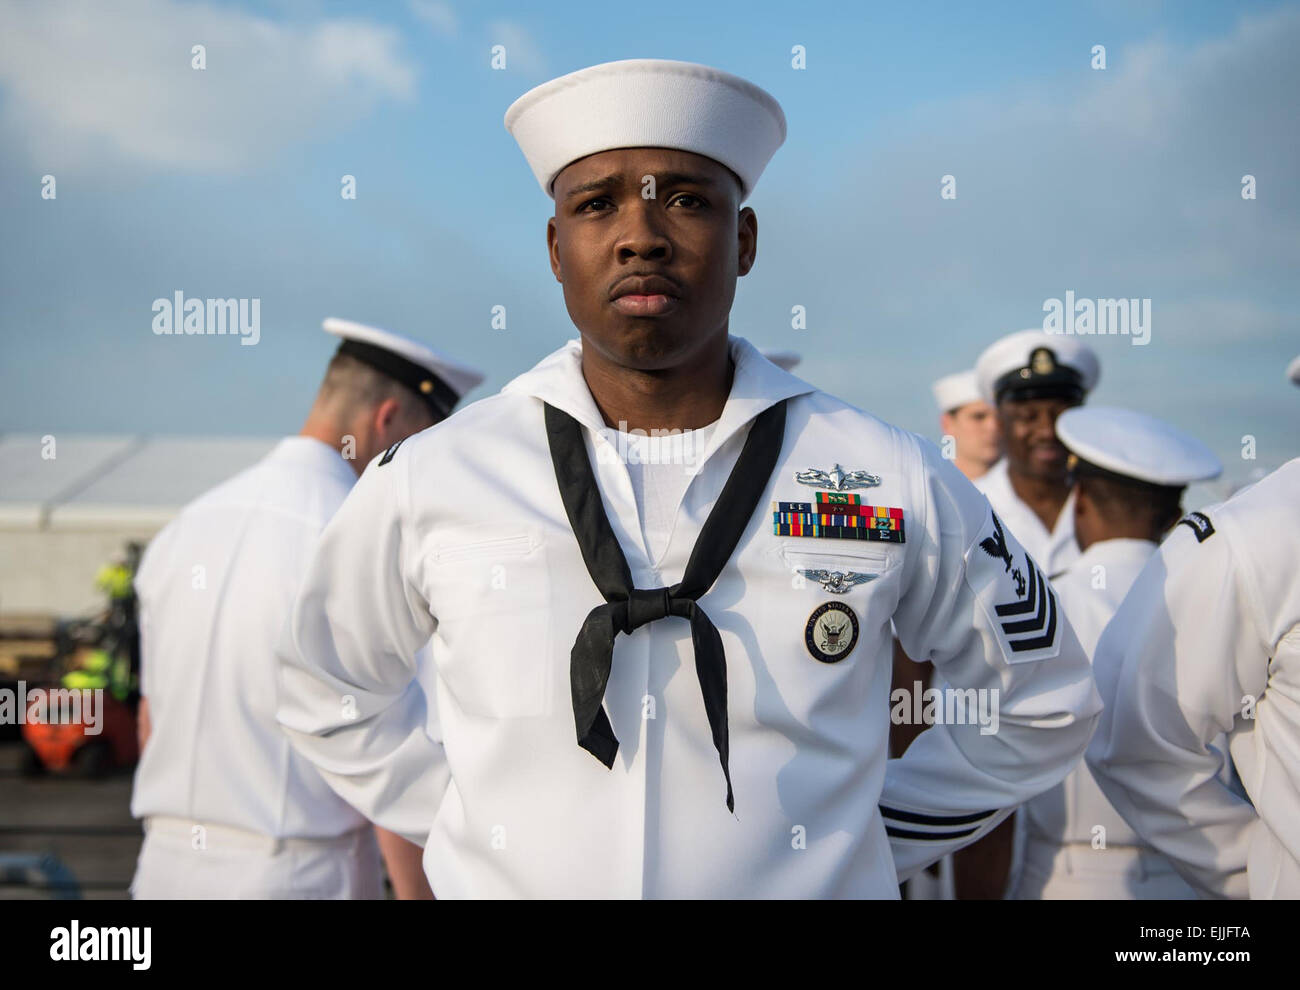 A US Navy sailor stands at parade rest during a uniform inspection ...